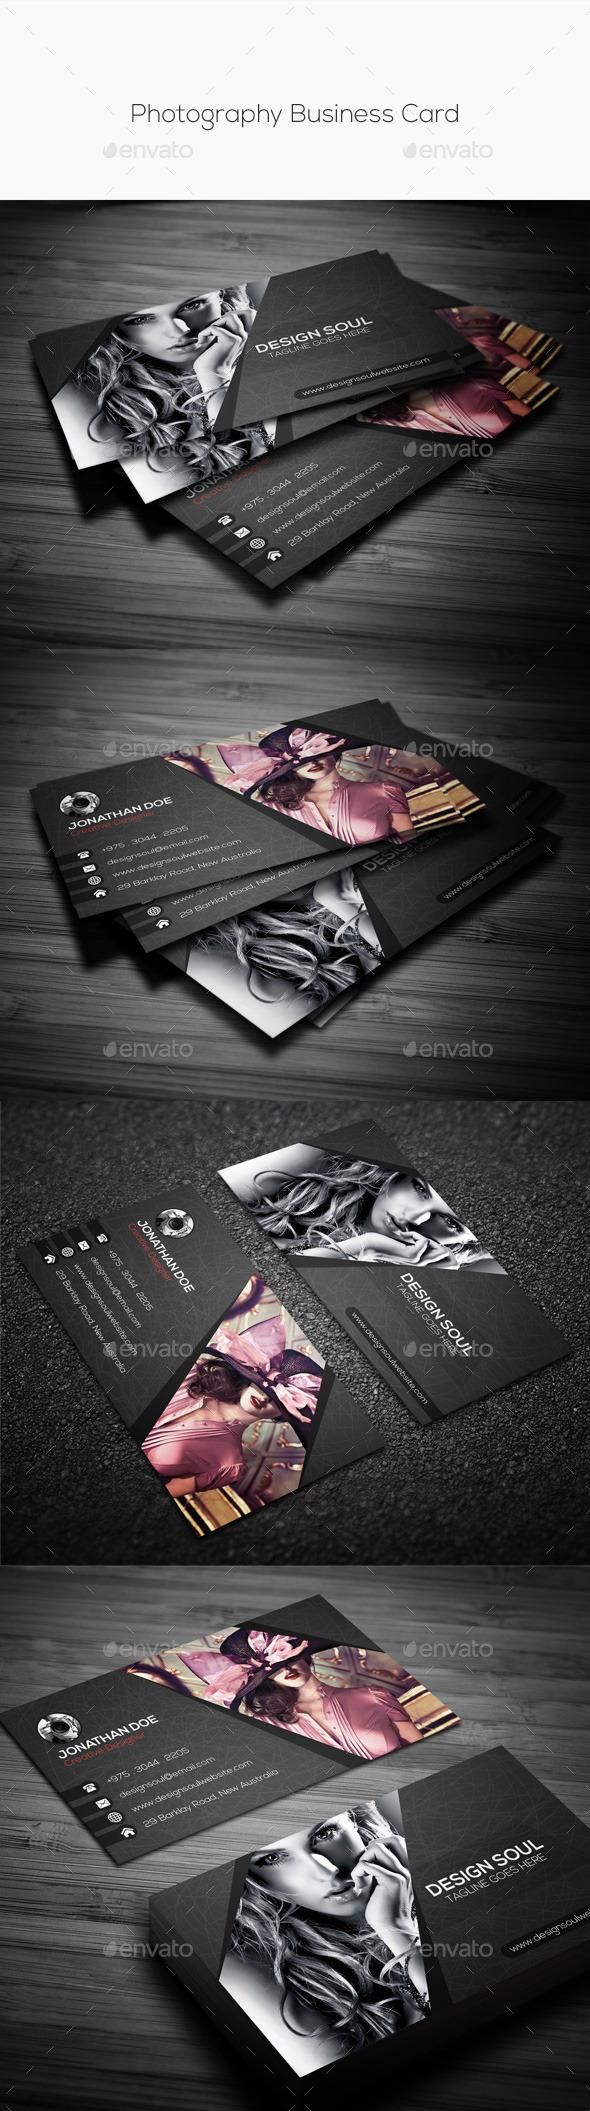 311 Best Business Card Images On Pinterest Business Card Design